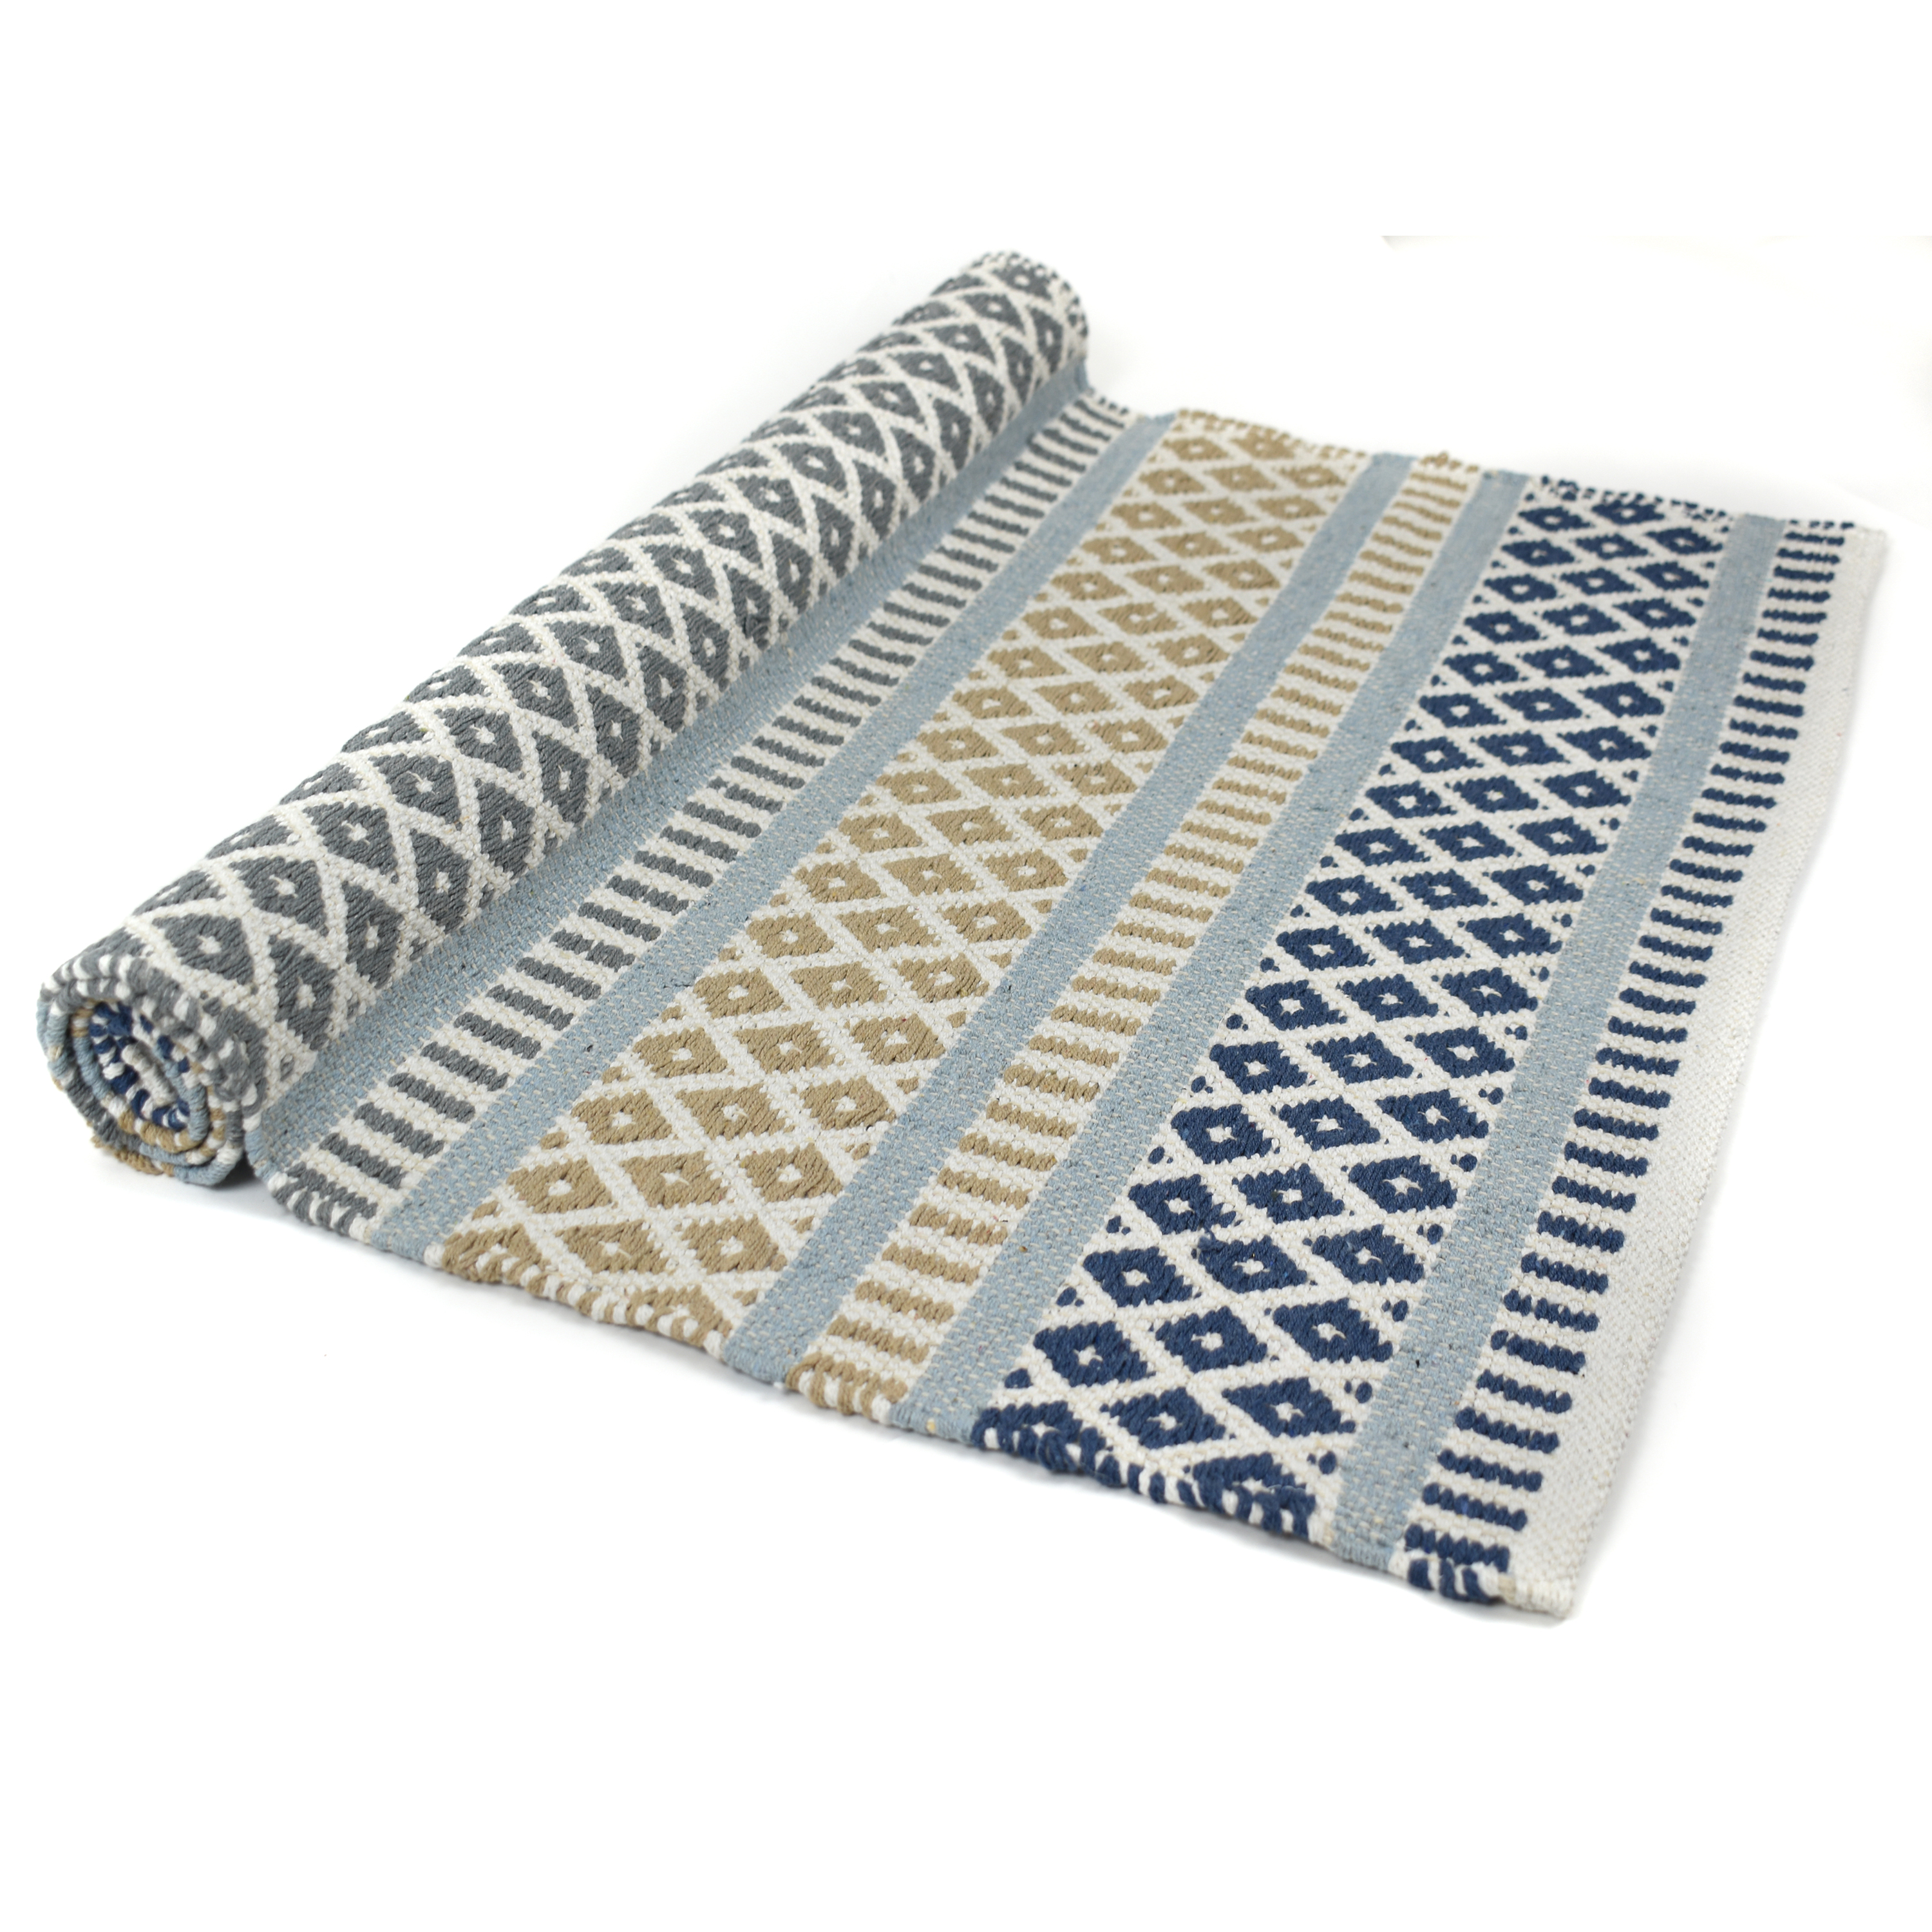 Navy, Tan, Grey Aztec patterned Rug with Duck Egg Blue stripe Size: 70cm x 120cm